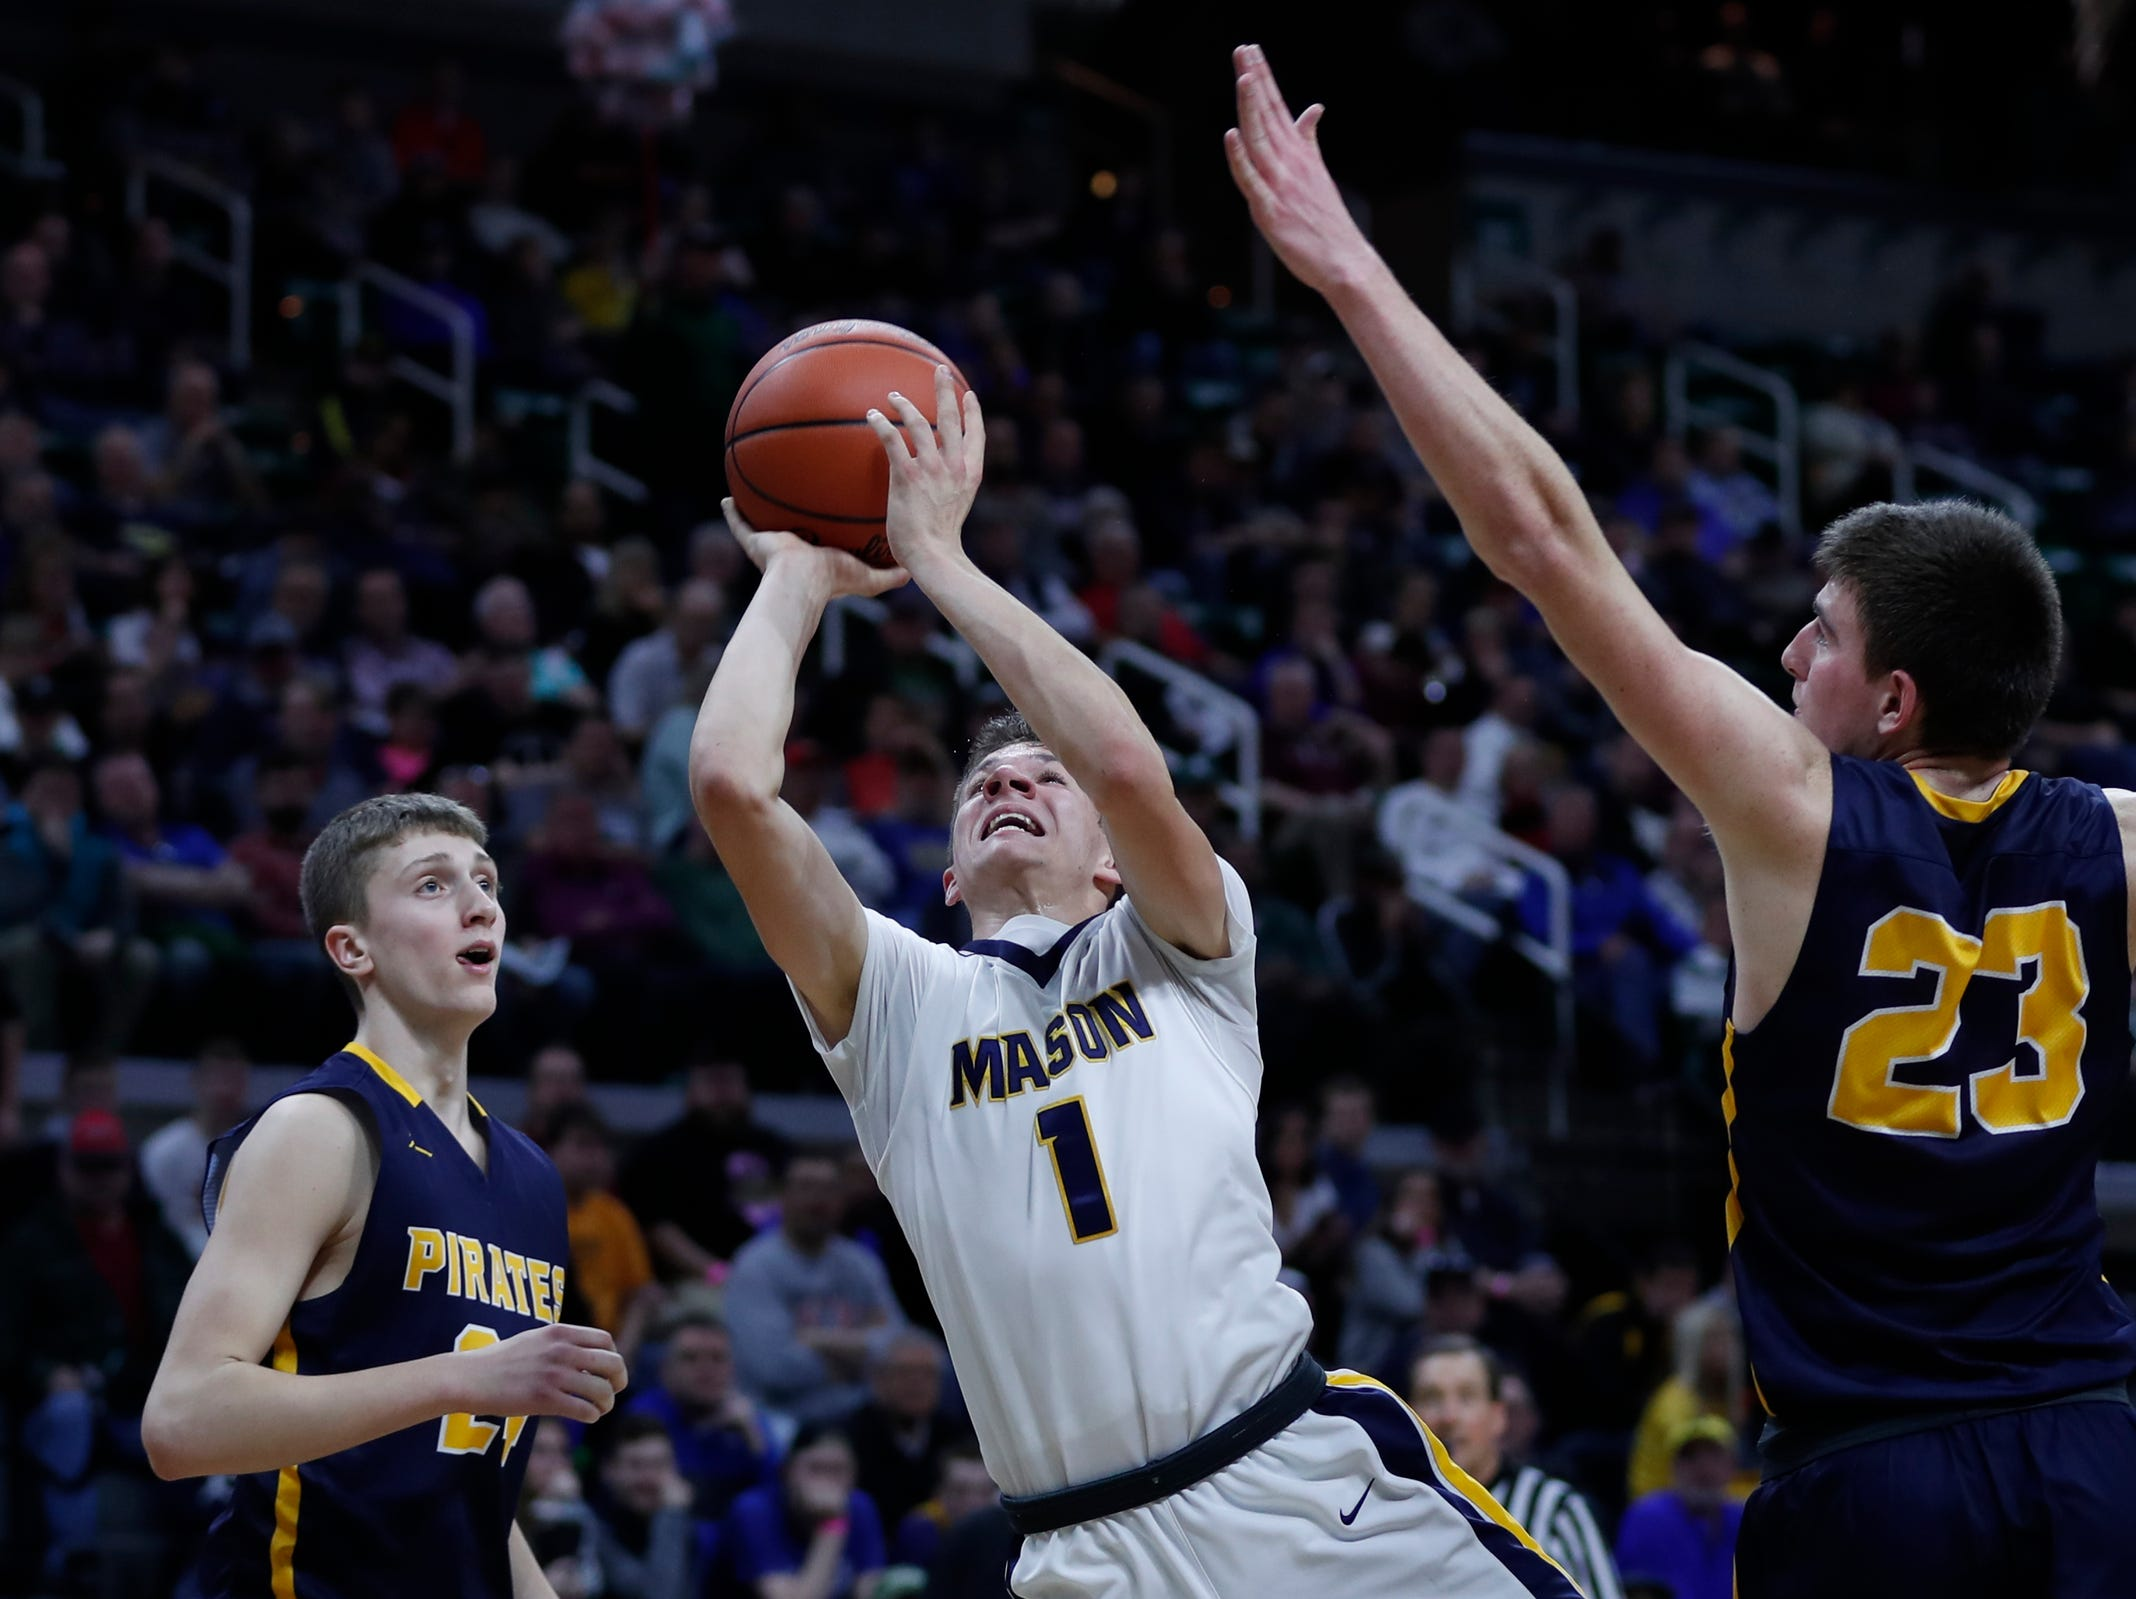 Erie-Mason's Joe Liedel (1) makes a layup against Pewamo-Westphalia during the second half of MHSAA Division 3 semifinal at the Breslin Center in East Lansing, Thursday, March 14, 2019.